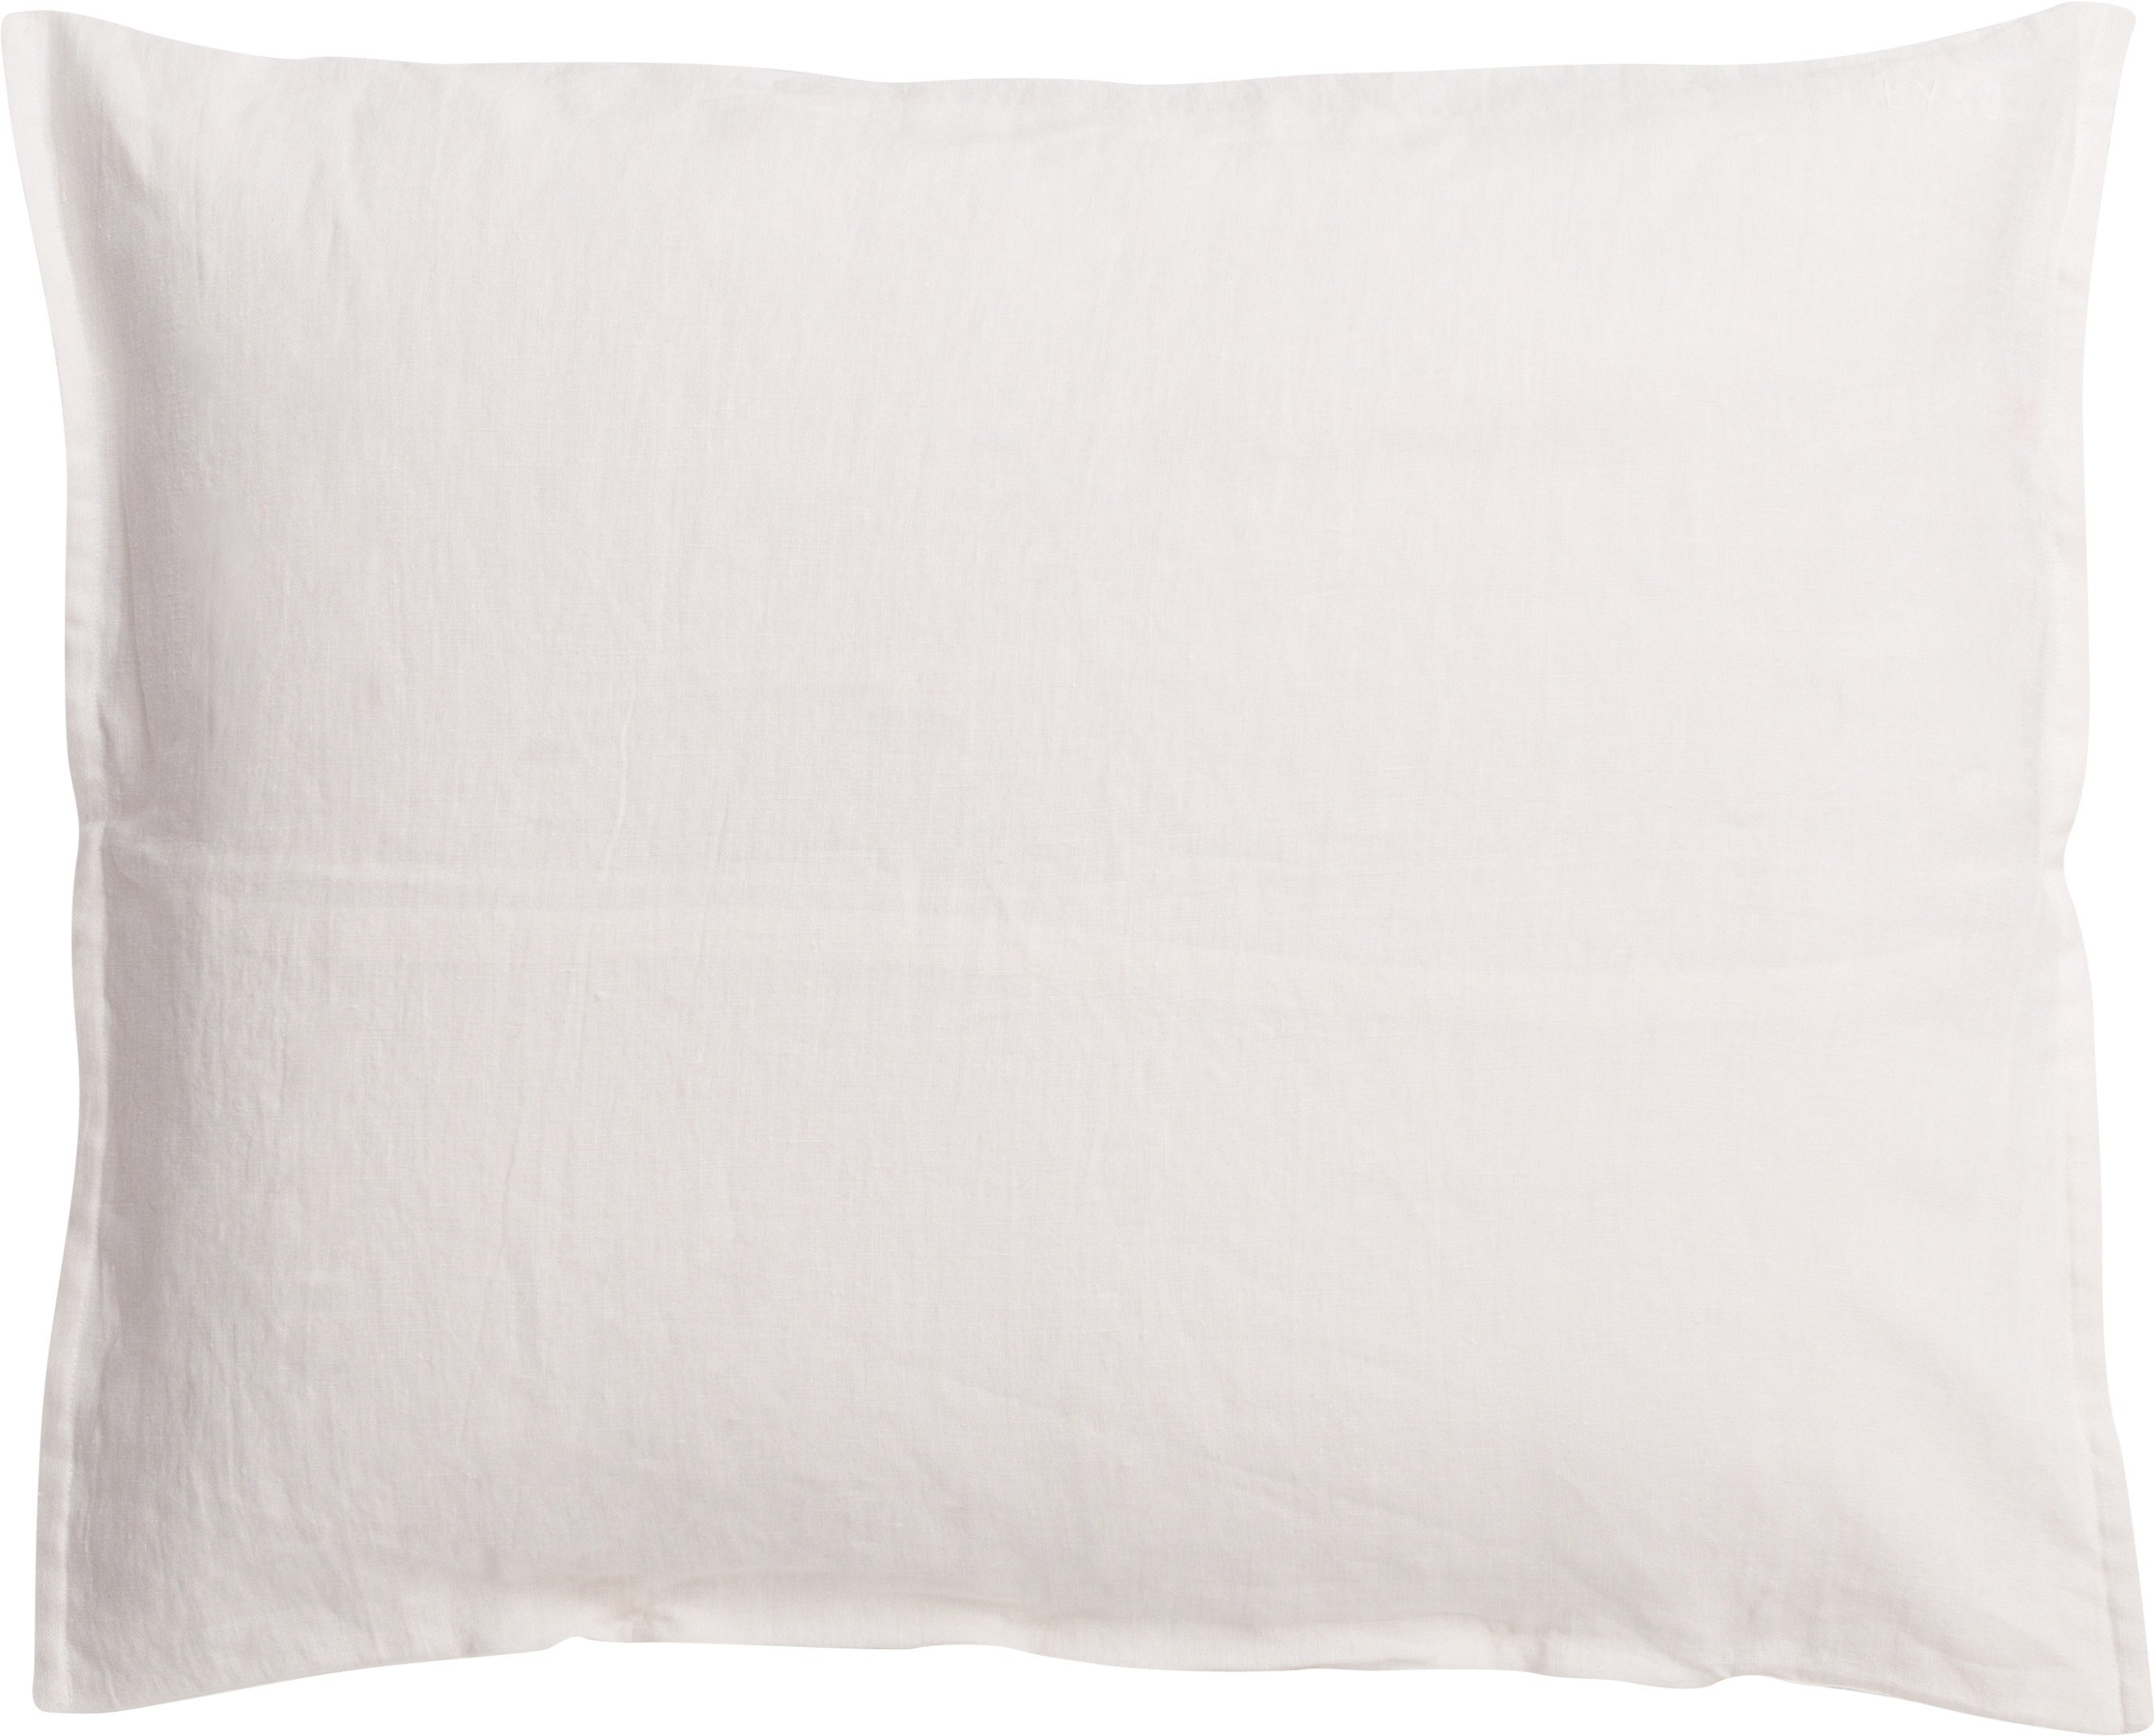 Linen Pillowcase 50x70 cm Cream, Łyko